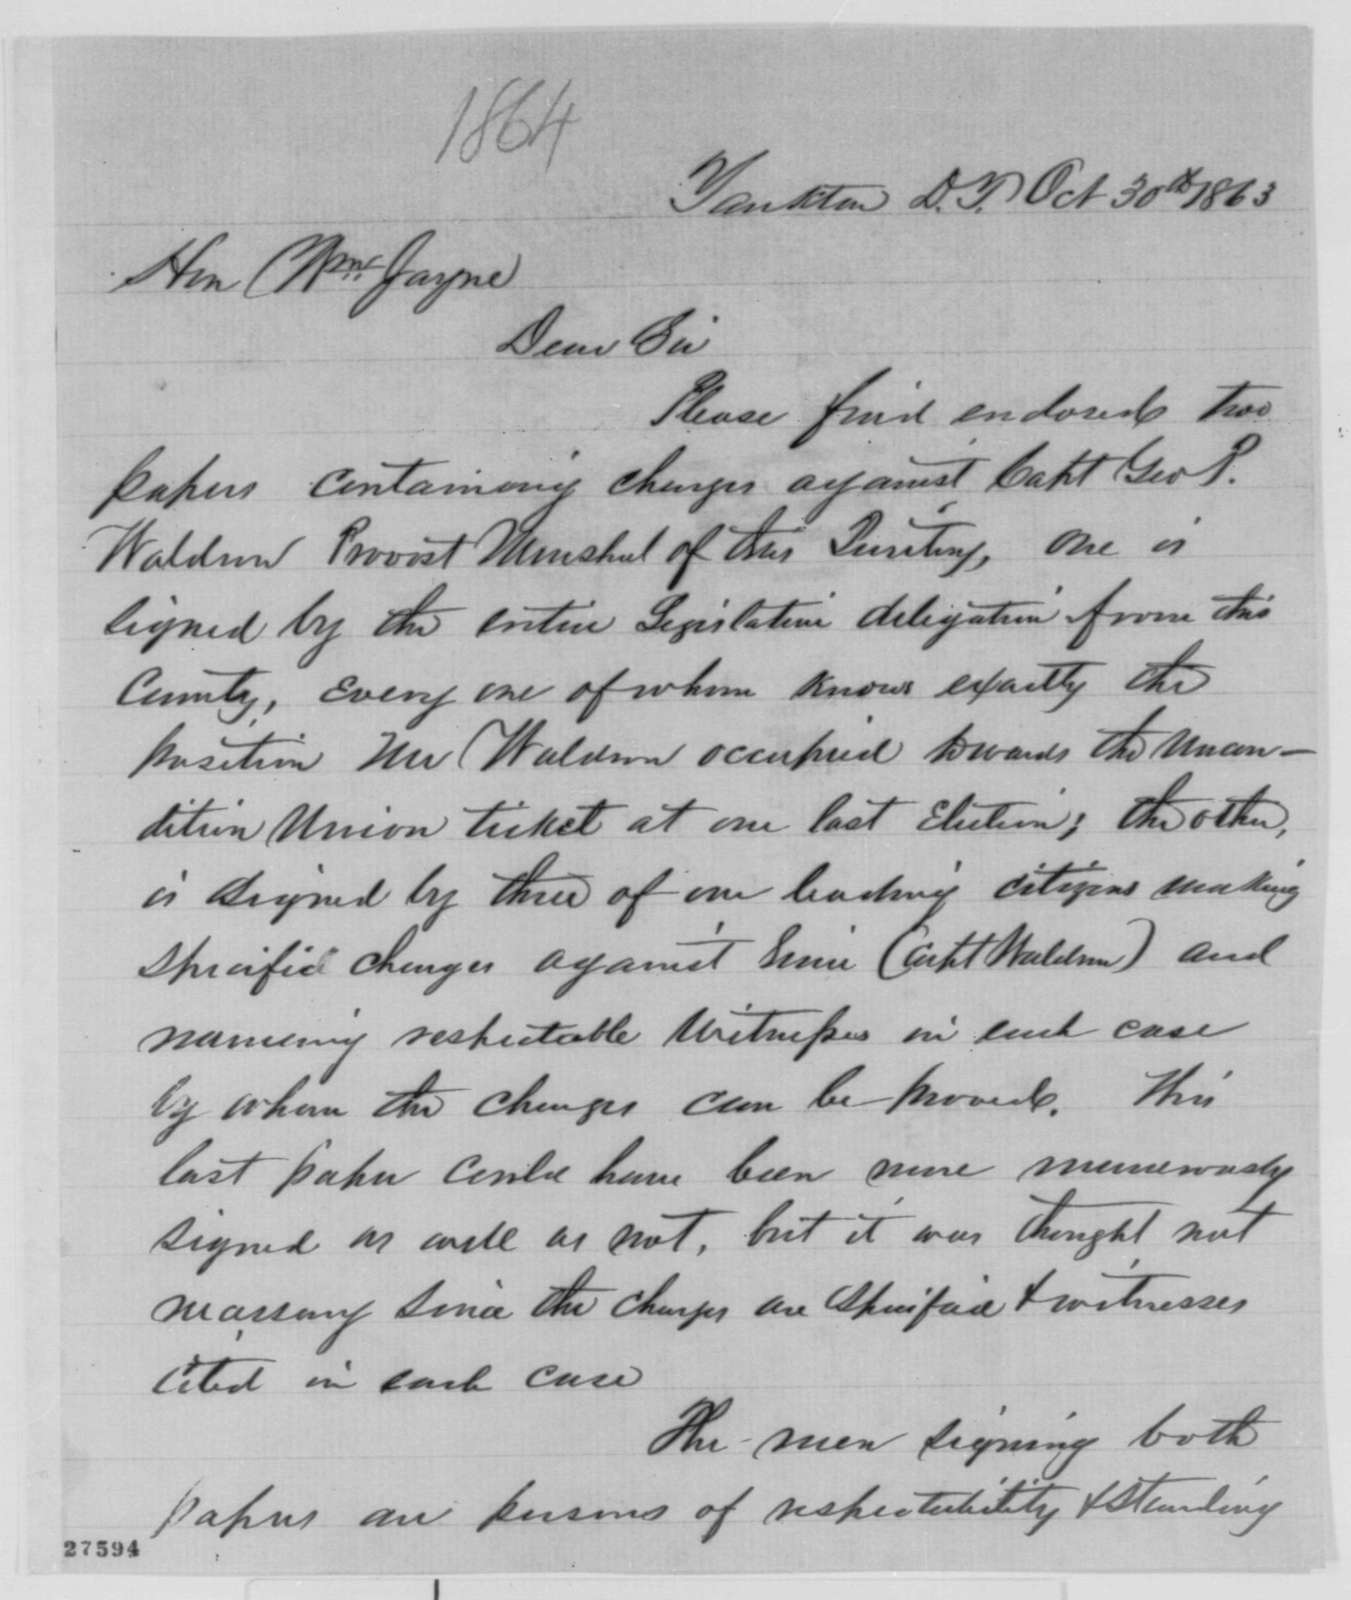 Newton Edmunds to William Jayne, Friday, October 30, 1863  (Removal of provost marshal in Dakota; endorsed by Jayne)